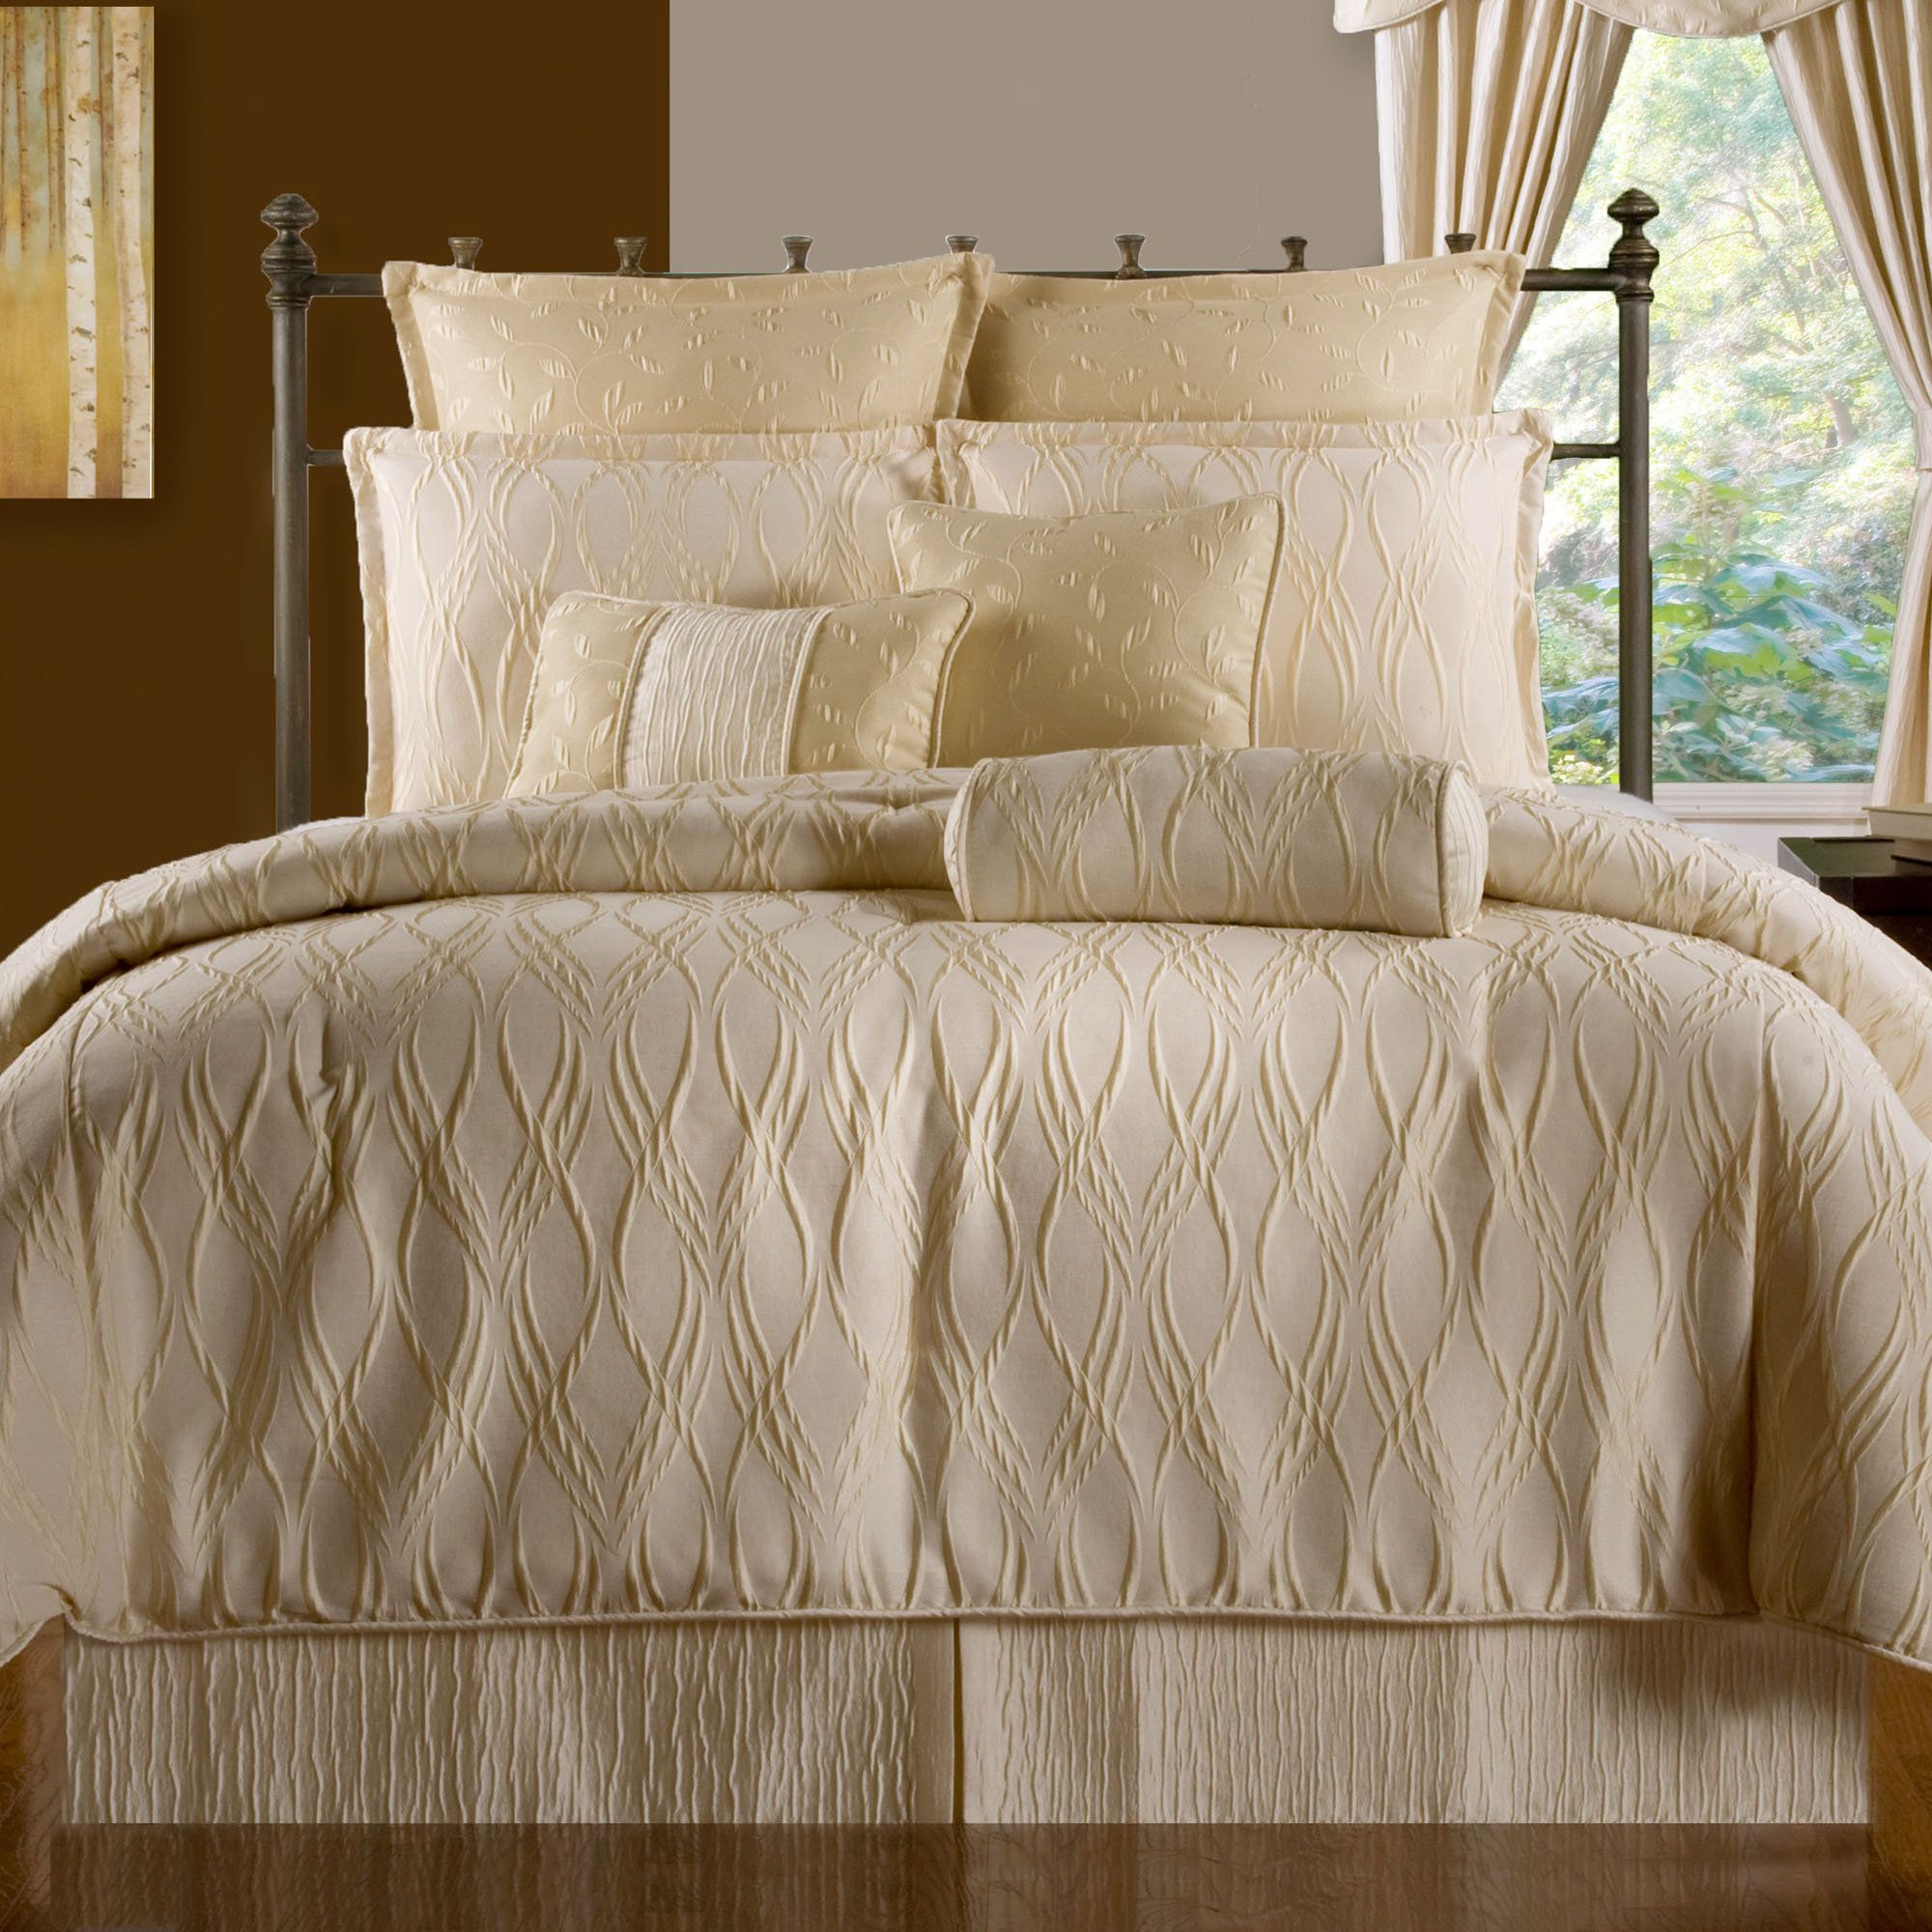 Sonoma Light Cream Comforter Bedding Cream Comforter